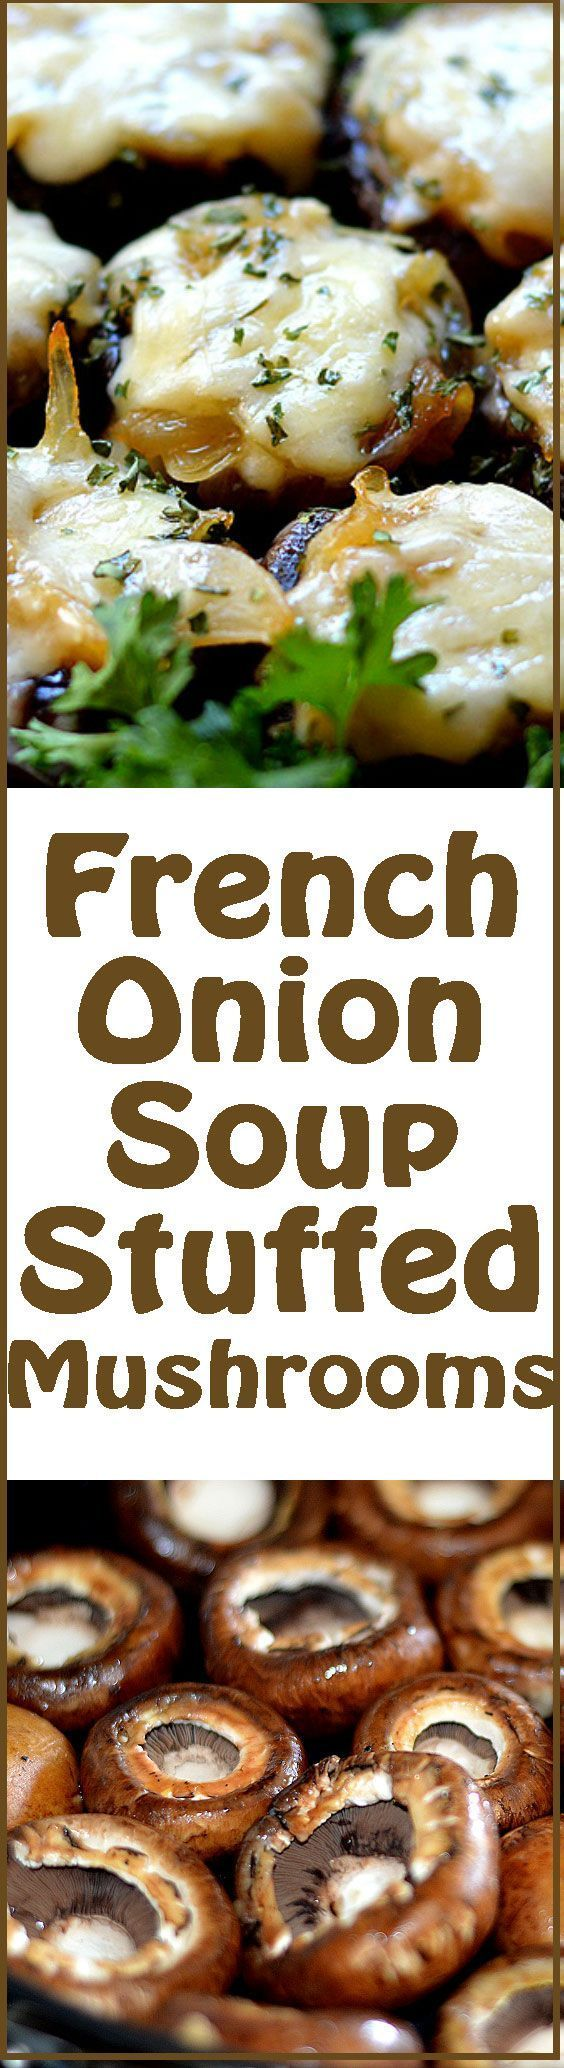 French Onion Soup Stuffed Mushrooms! YUM!!! Would be delicious, is simple to make and can be vegetarian or vegan !